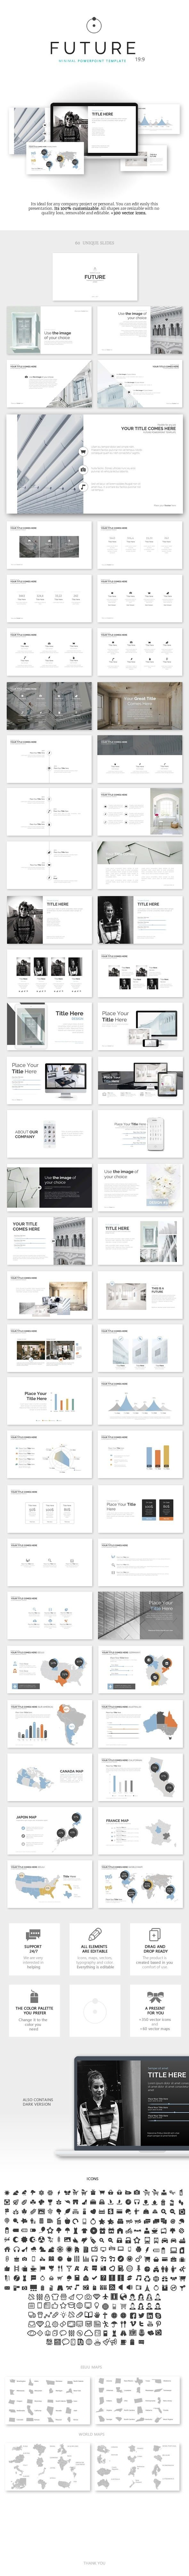 186 best graphic design presentation designs images on pinterest future minimal powerpoint template presentation slidespresentation designpresentation templatesarchitectural toneelgroepblik Image collections